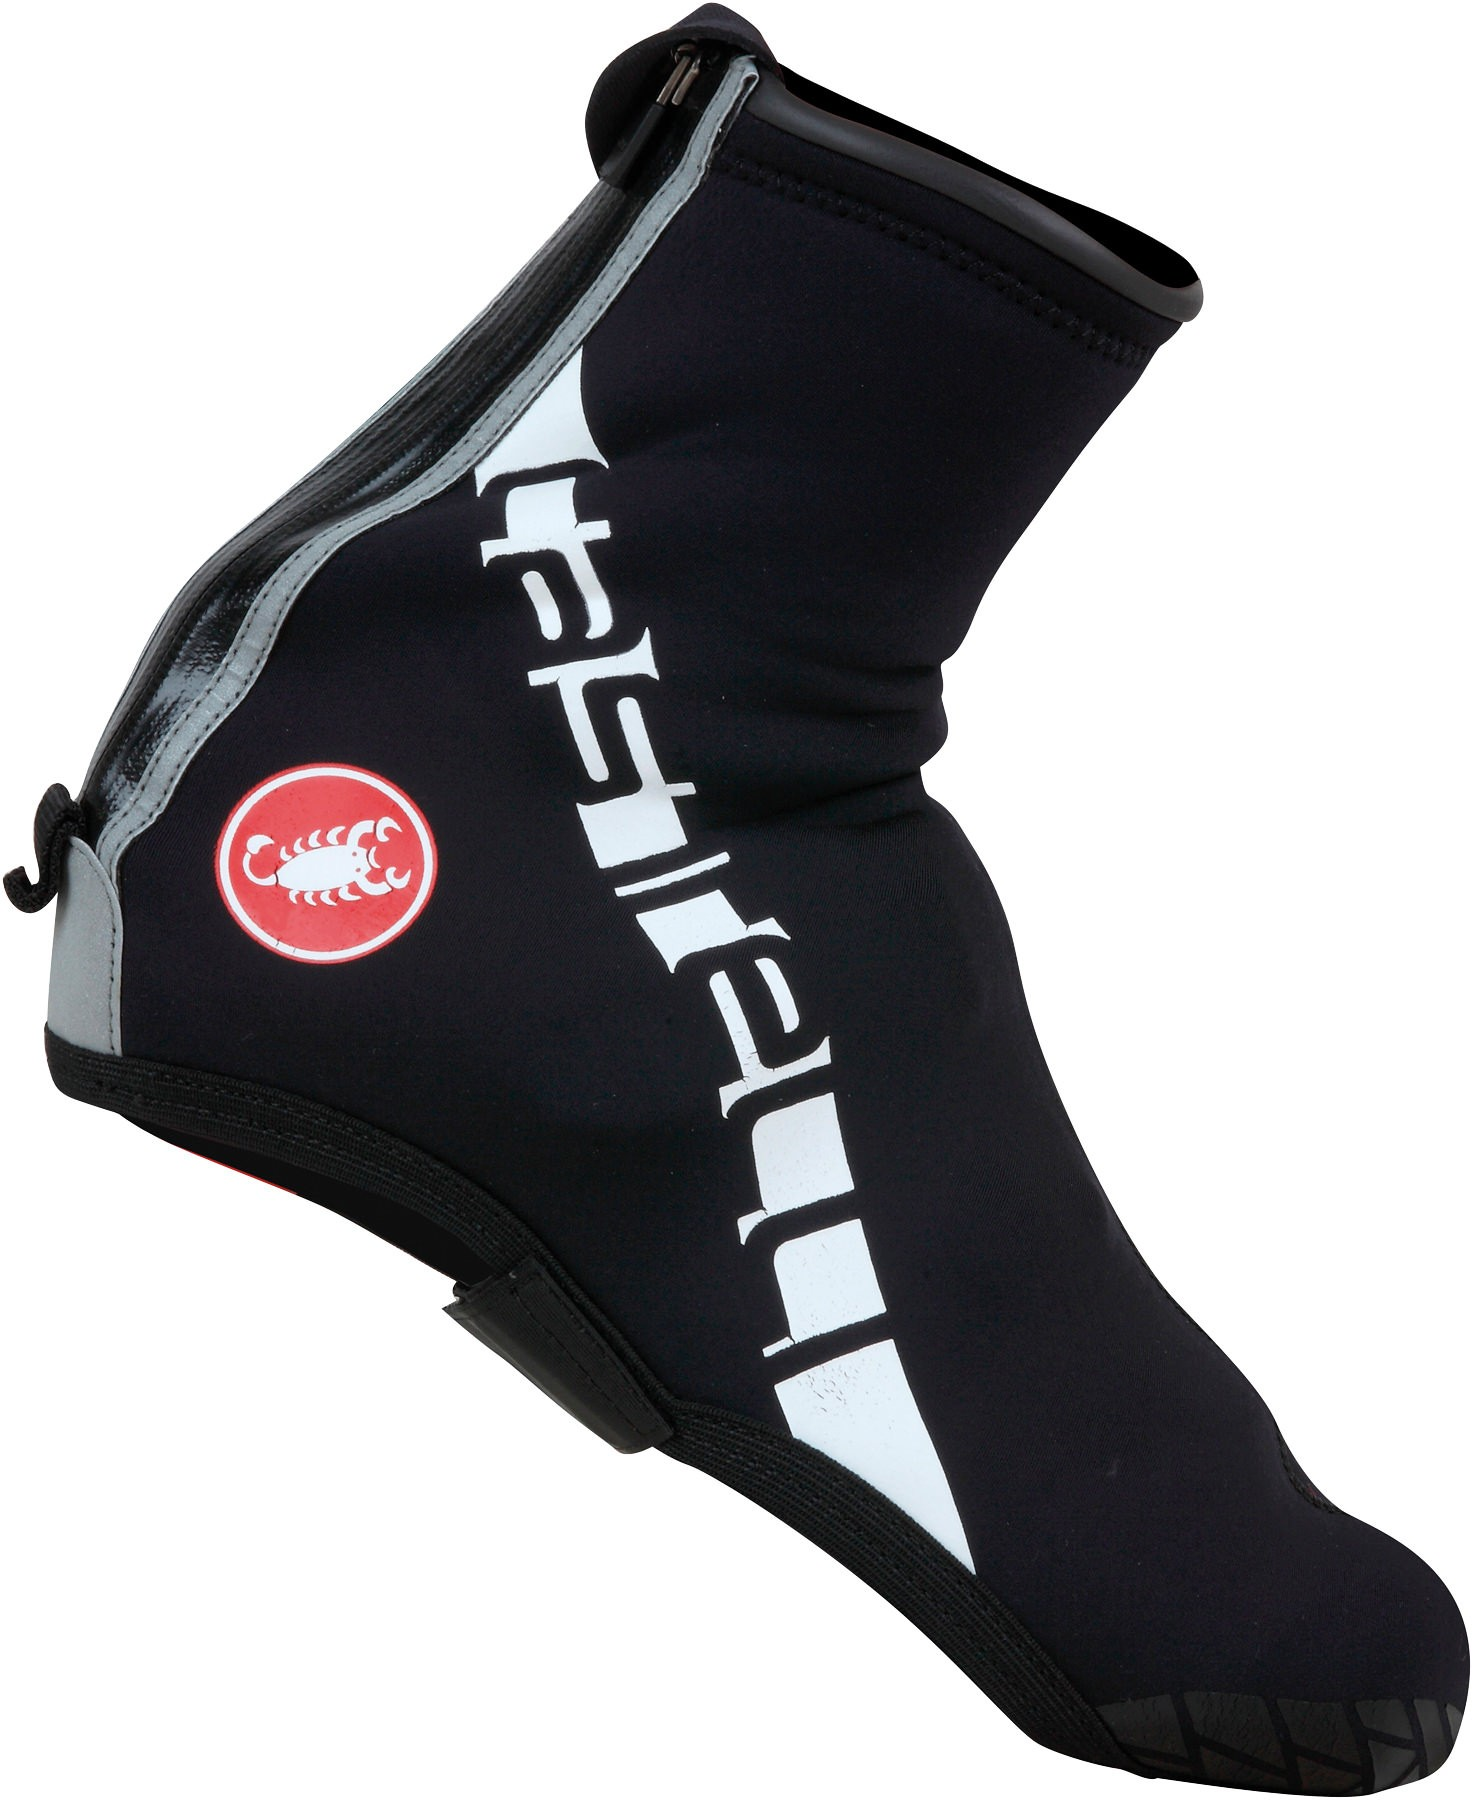 CASTELLI Diluvio All-Road Shoecover Black